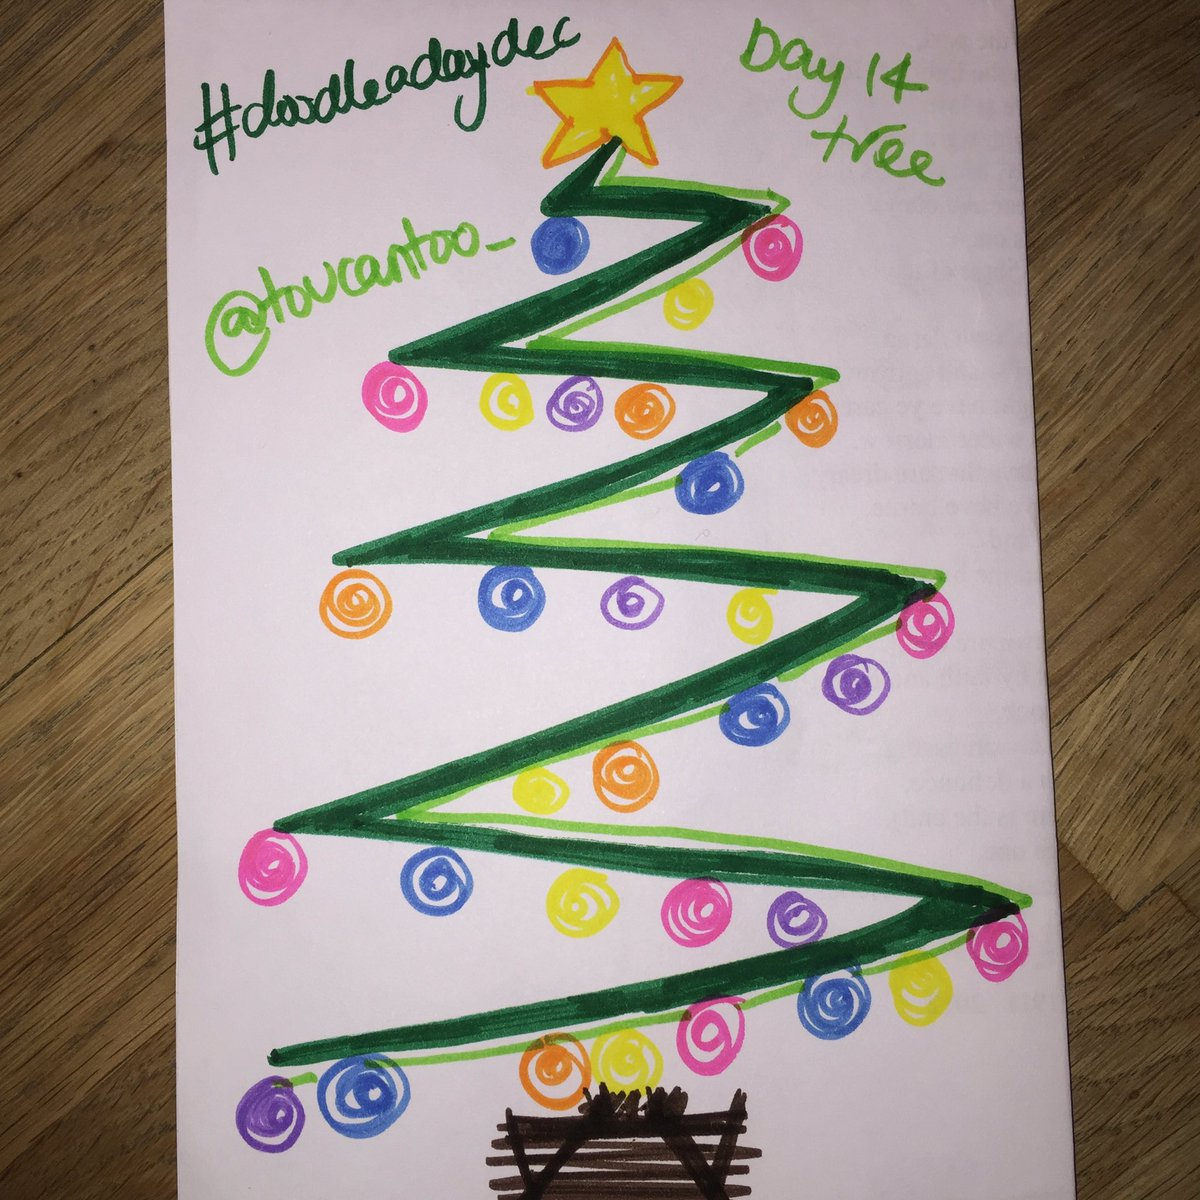 Natasha Blok Happiness Coach On Twitter Day 14 Doodleadaydec Tree Toucantoo Make Your Christmas Tree Look Like Zumagamers Zumagame Christmastree Doodle Christmas Https T Co Tj2m4sh1hh